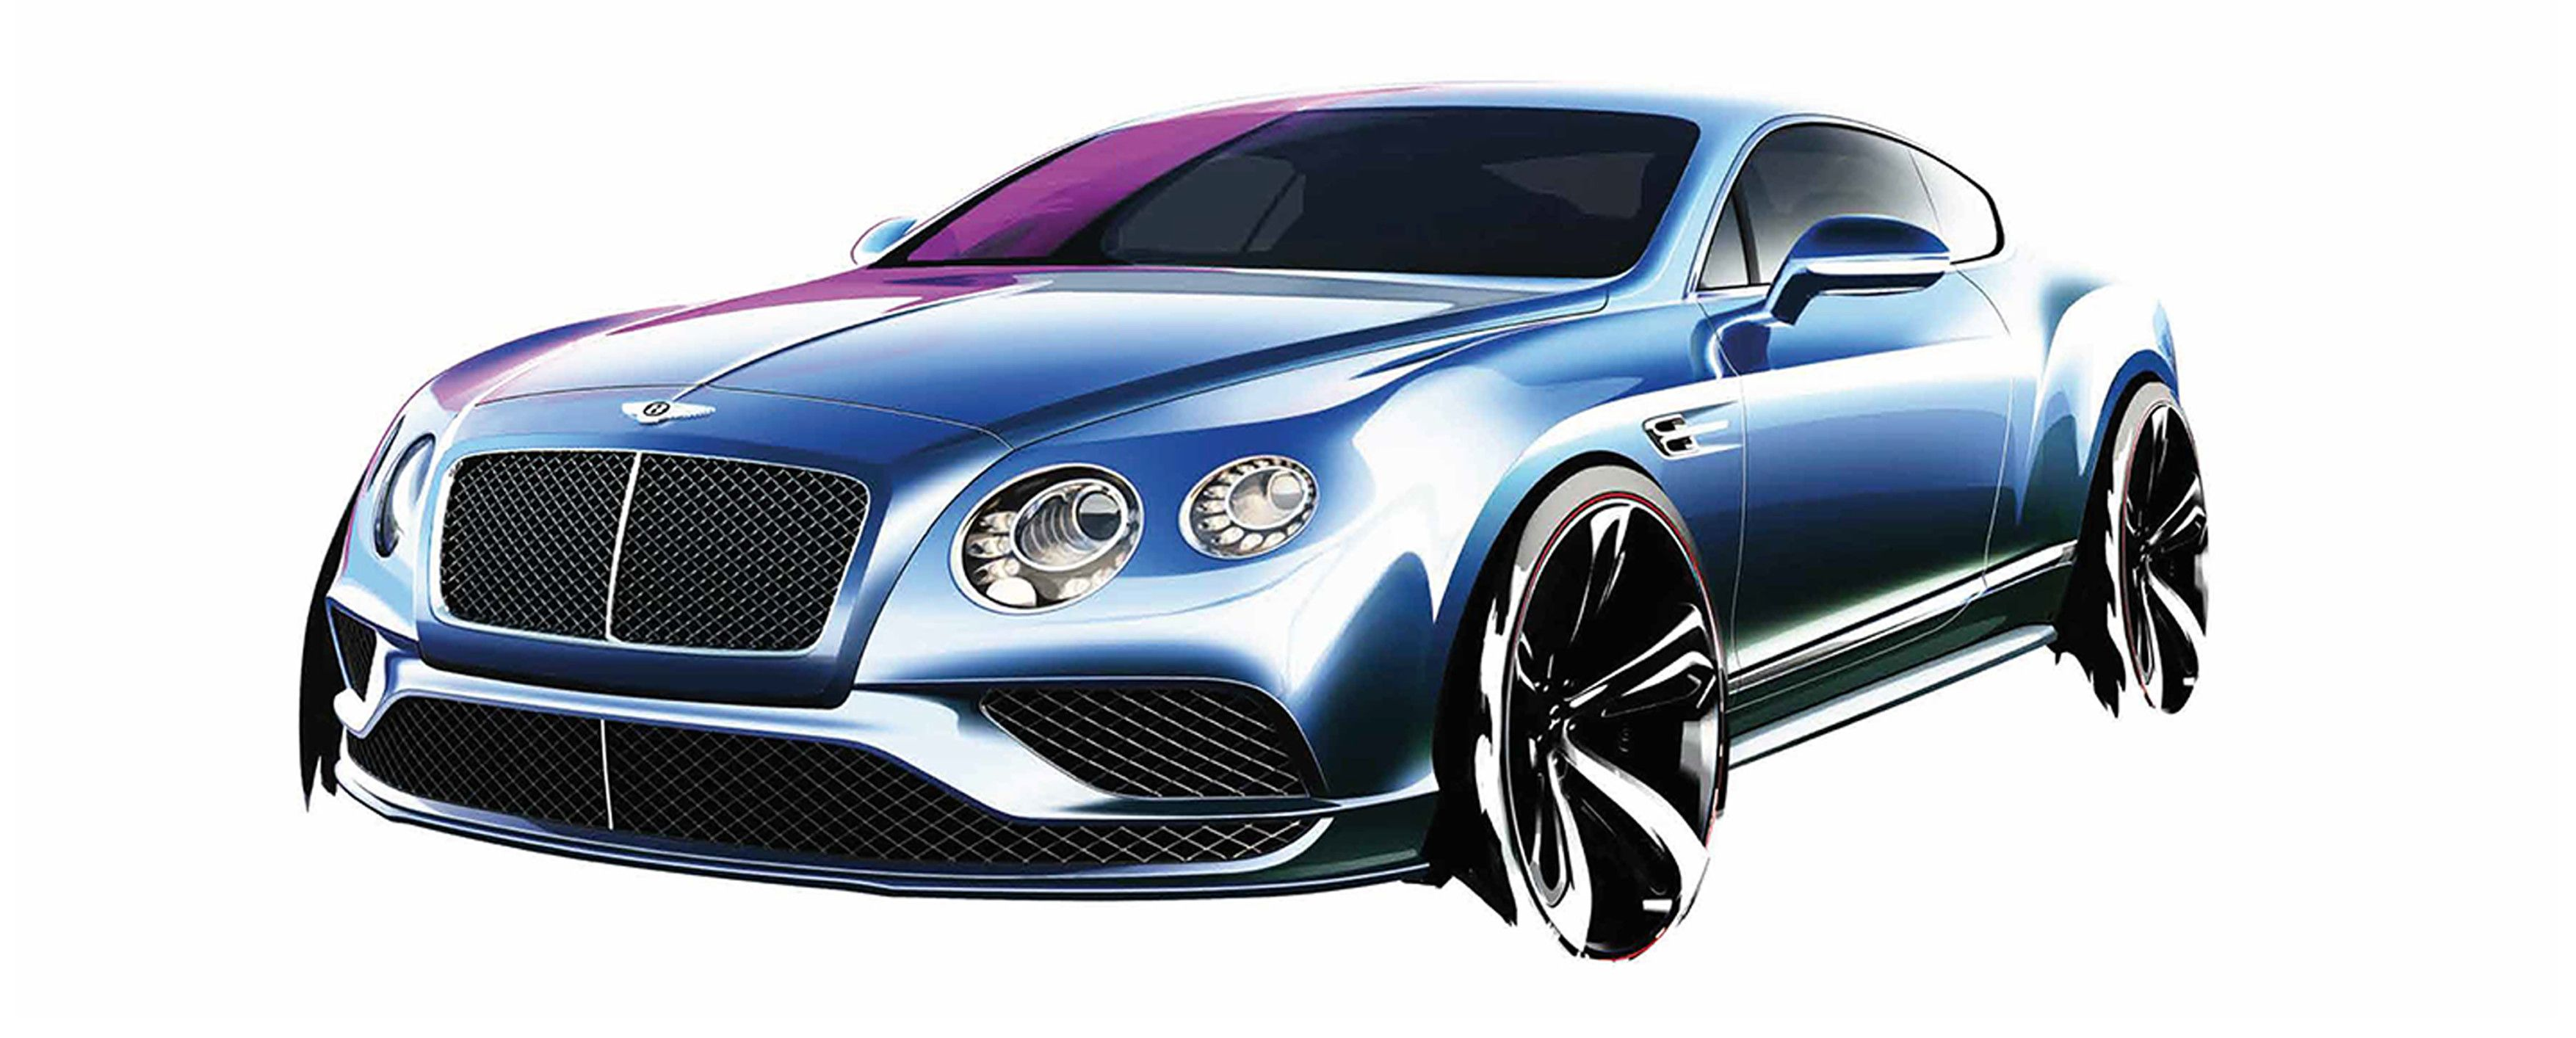 vancouver autoform mulliner package vehicles bentley price continental gt